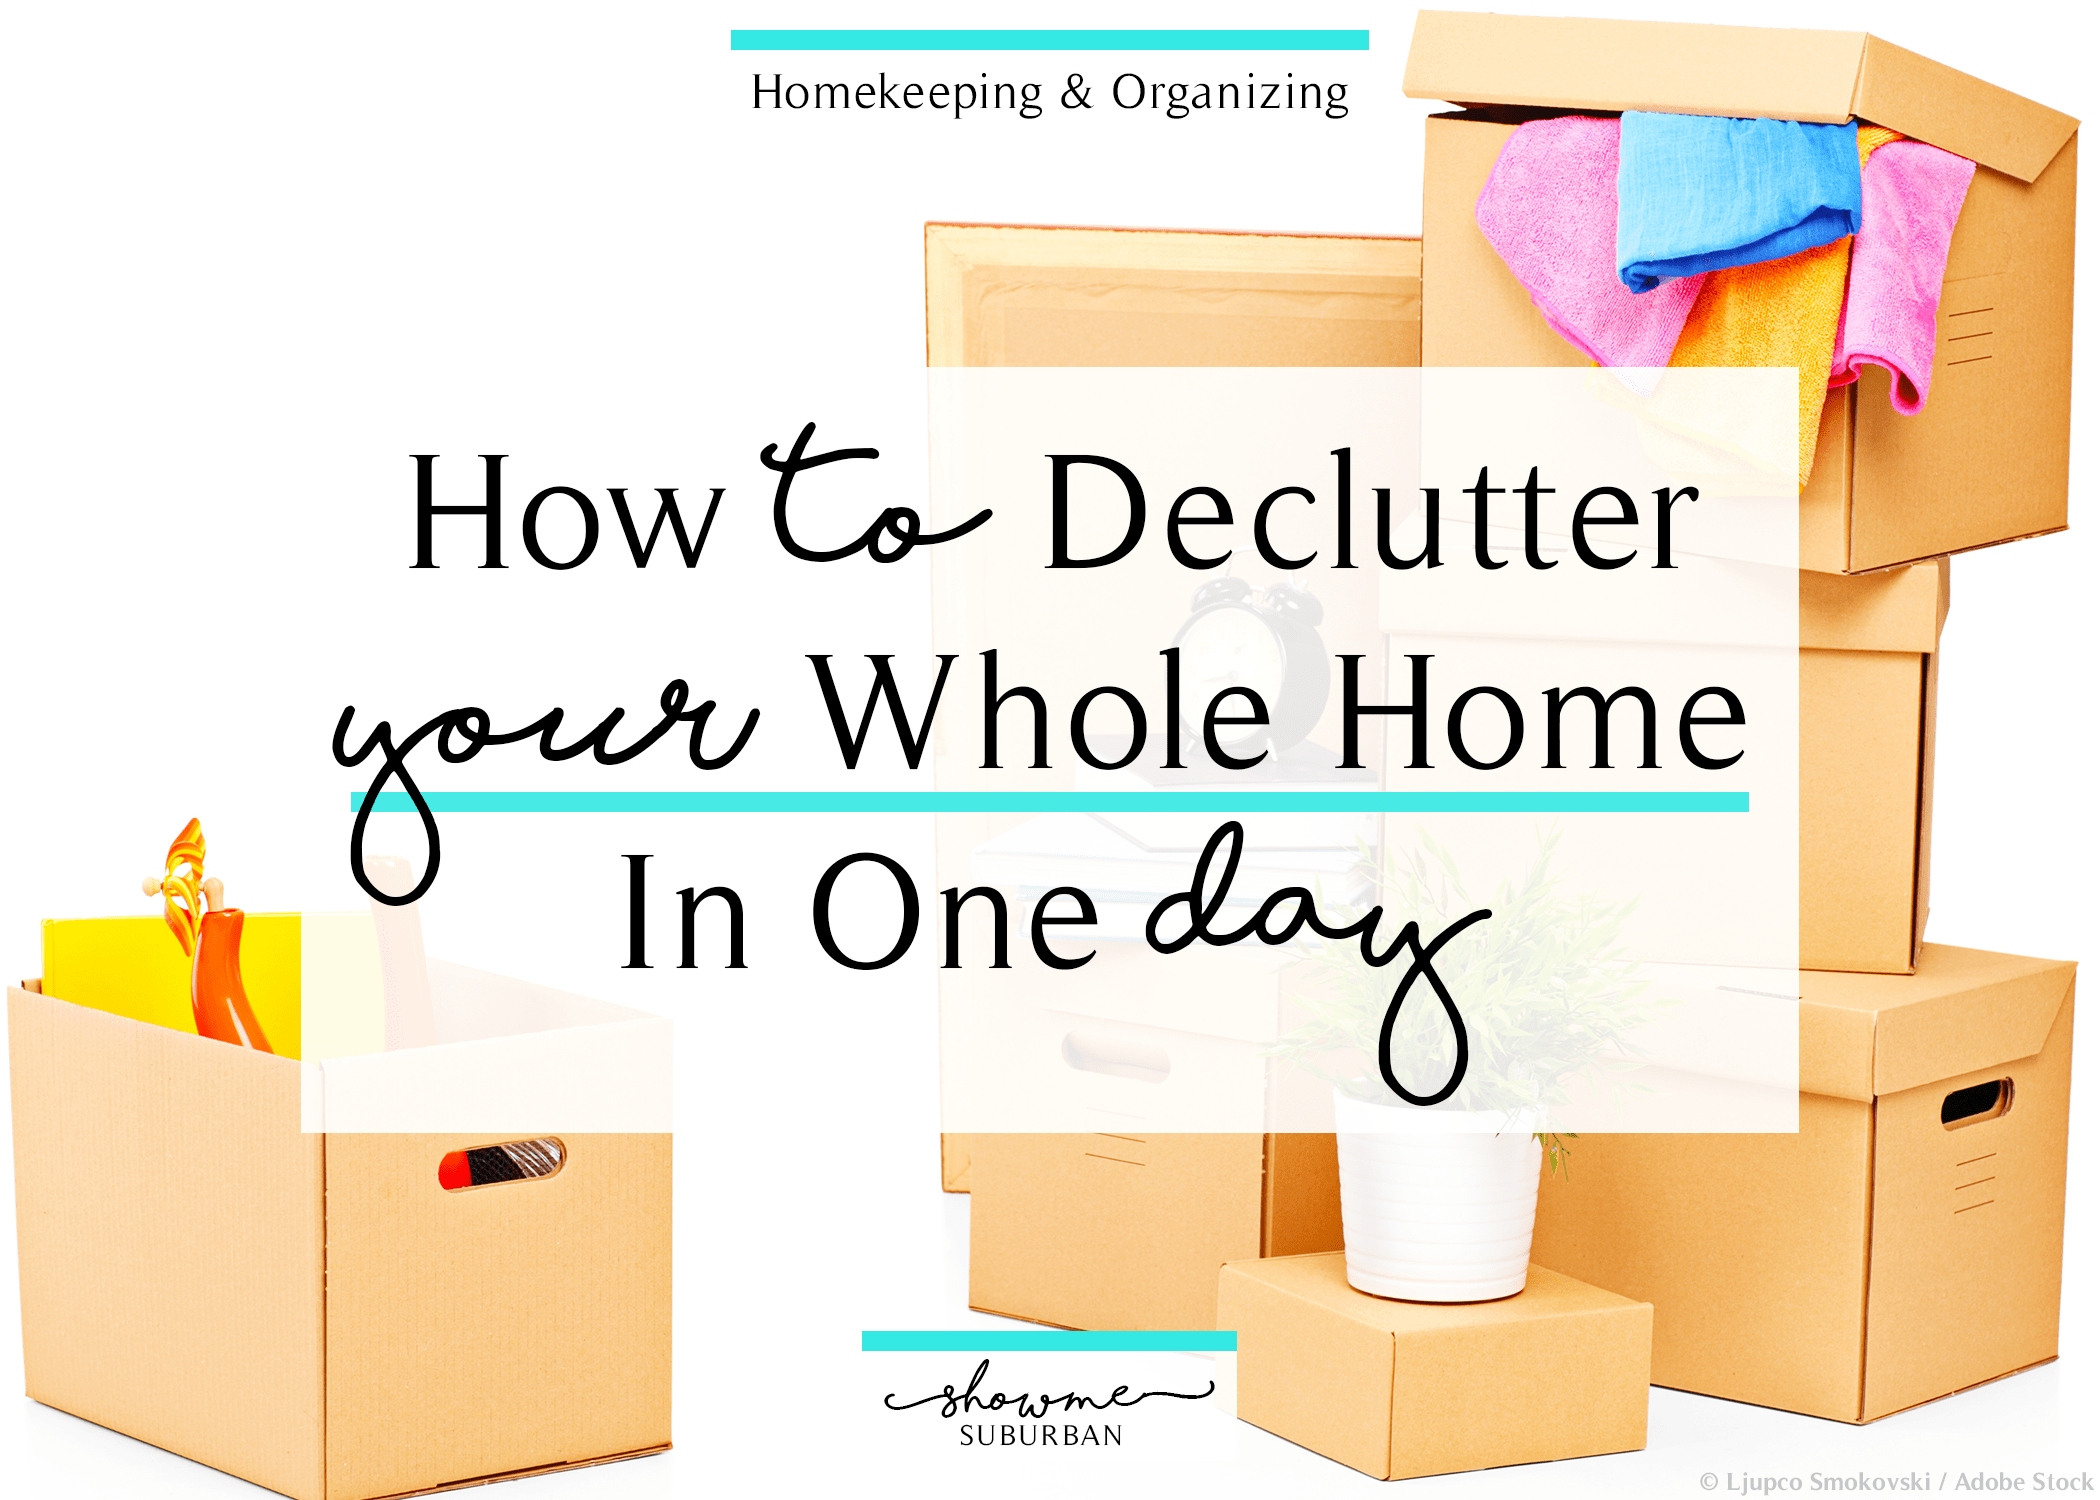 2. Don't bring any new items into your home until the decluttering process is complete.